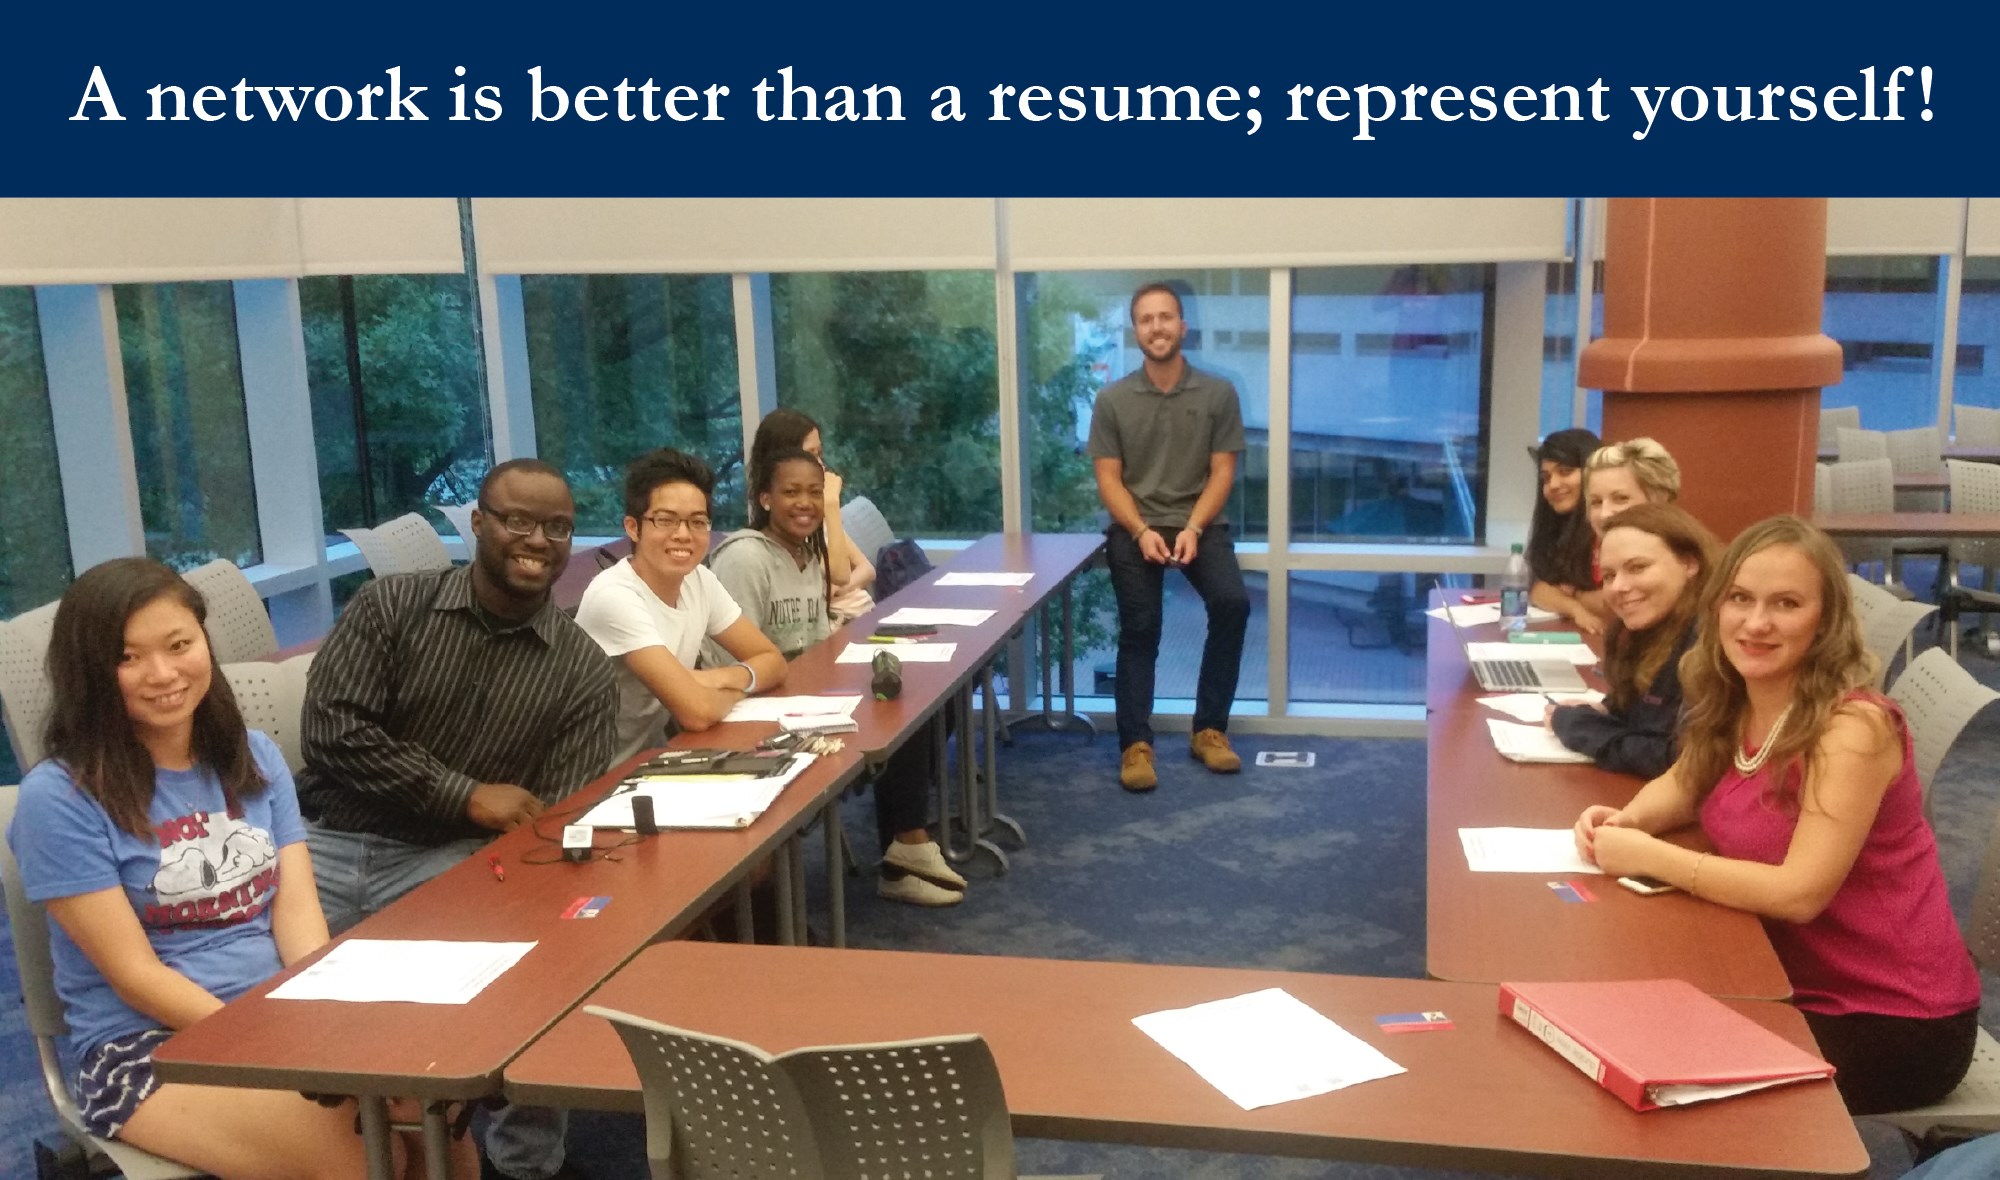 A network is better than a resume; represent yourself!